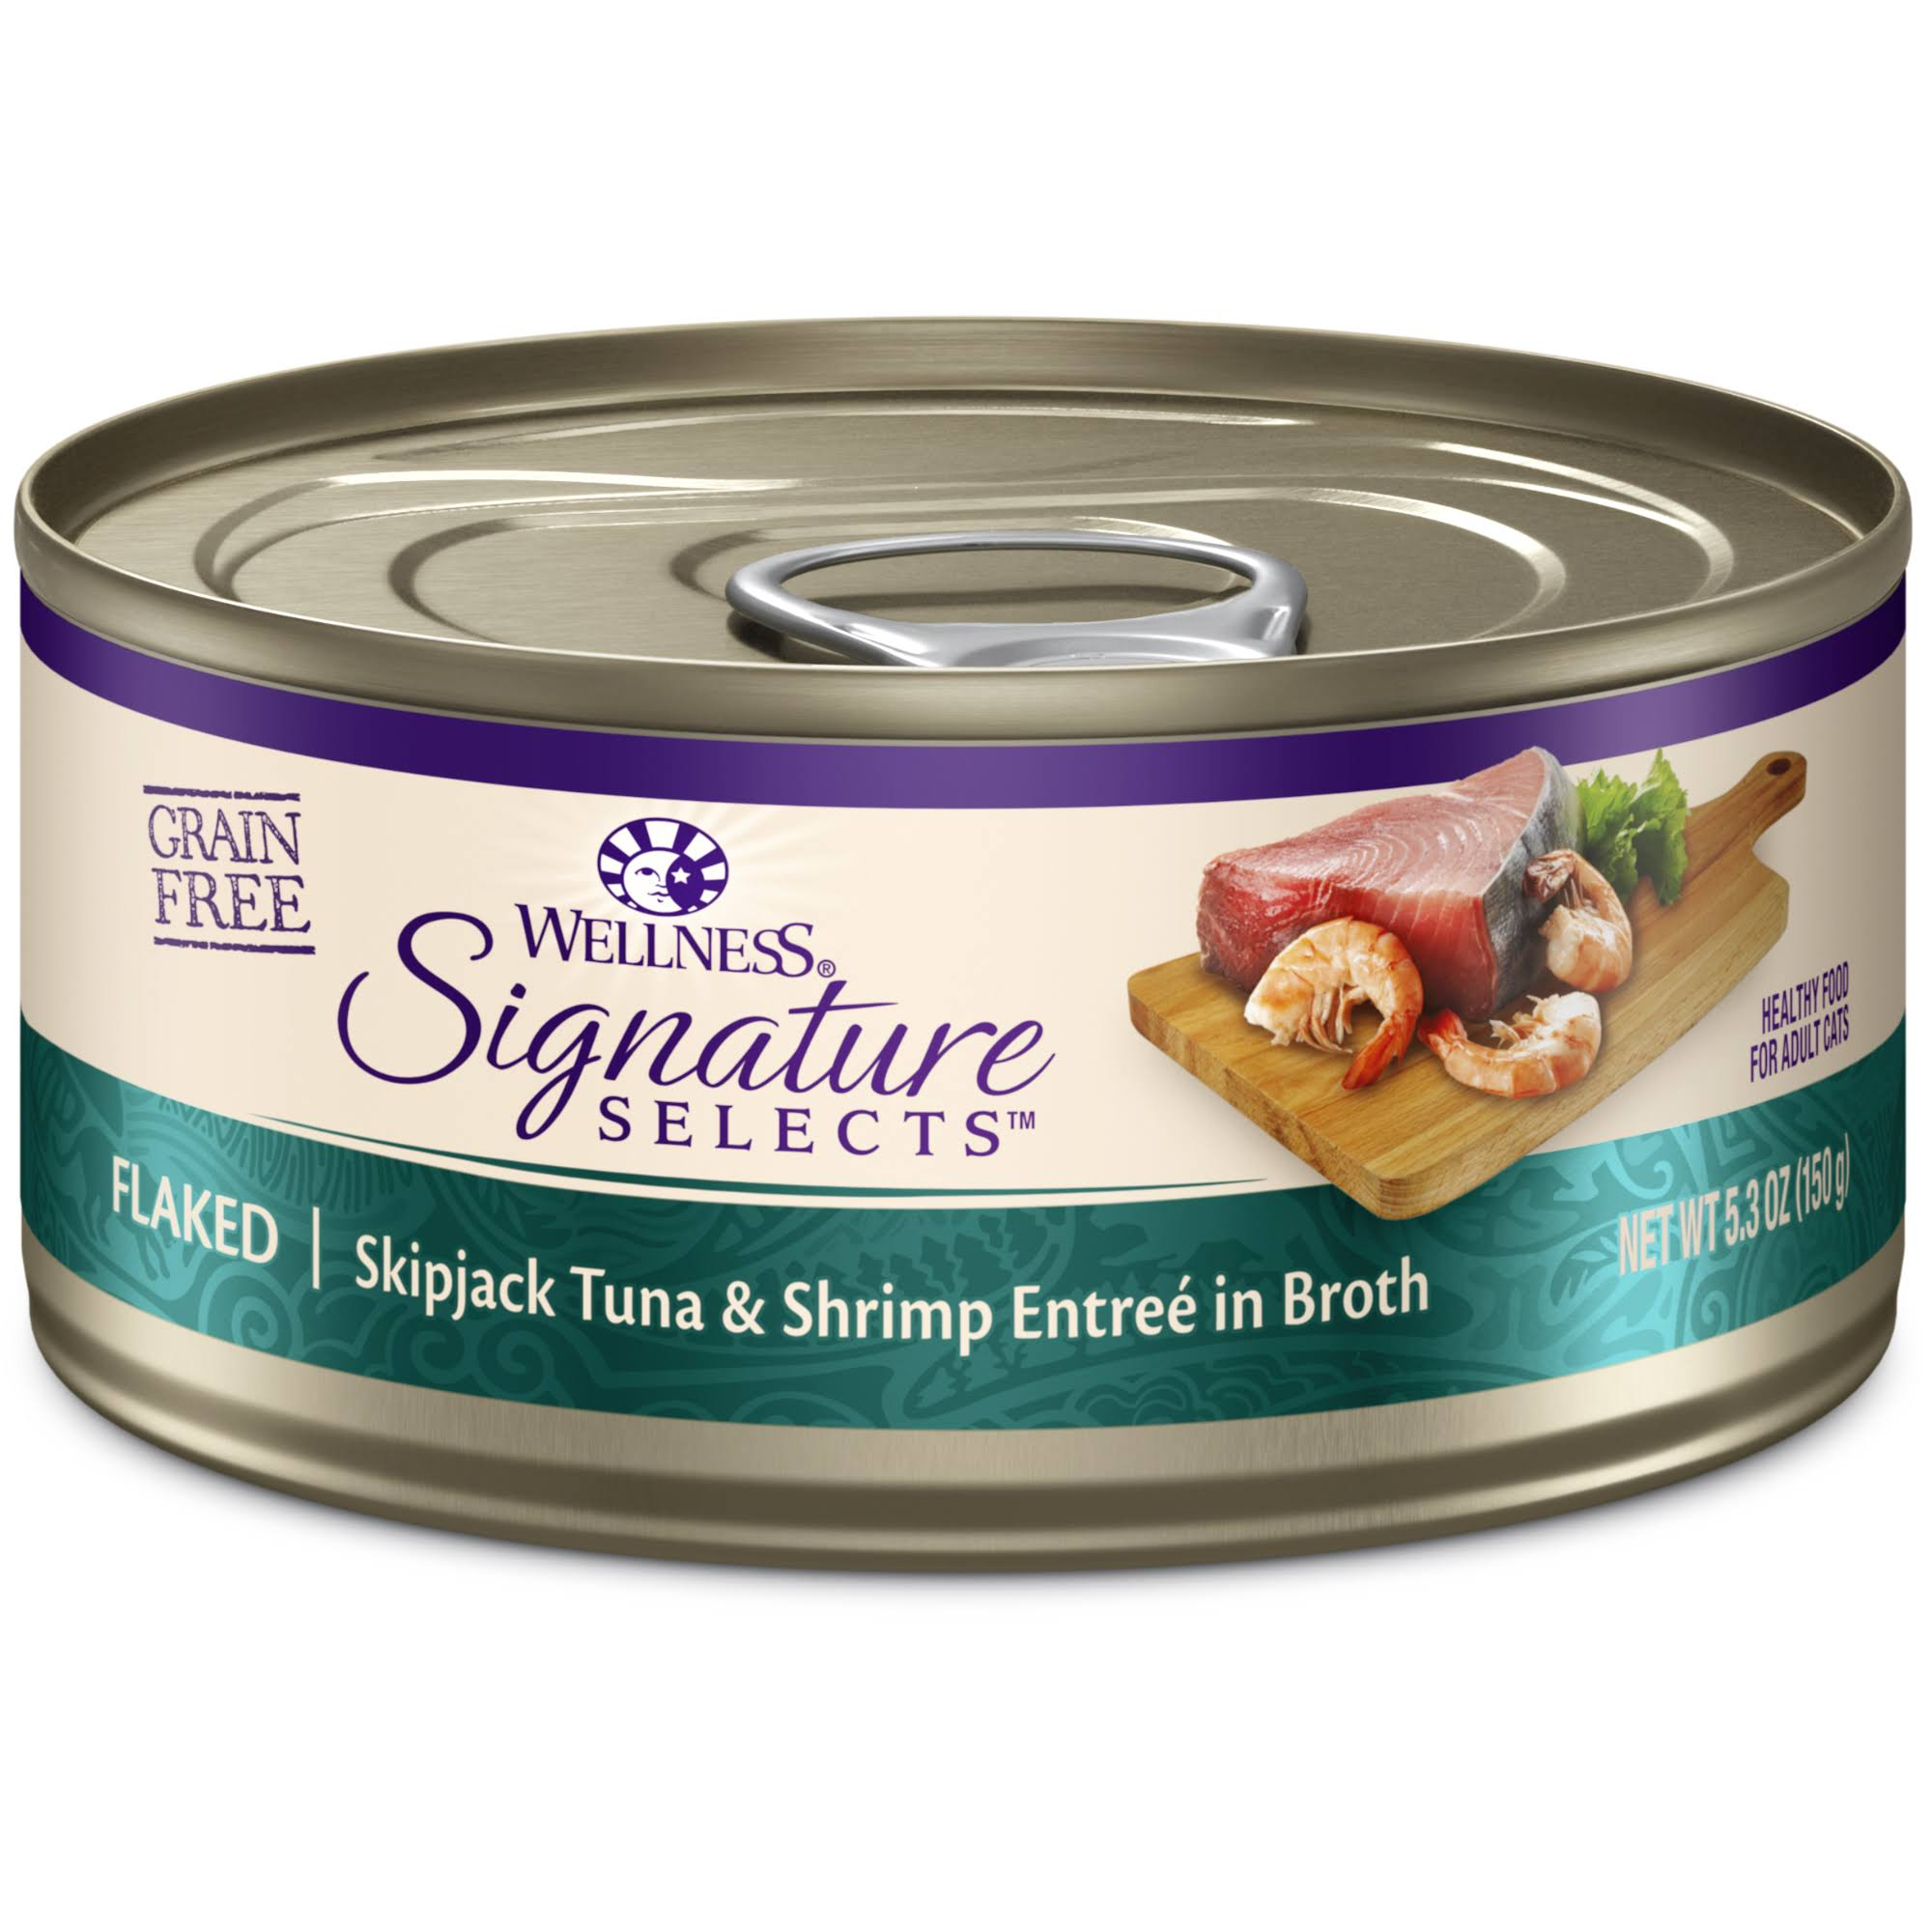 Wellness Signature Selects Flaked Tuna and Shrimp Cat Food - 5.3oz